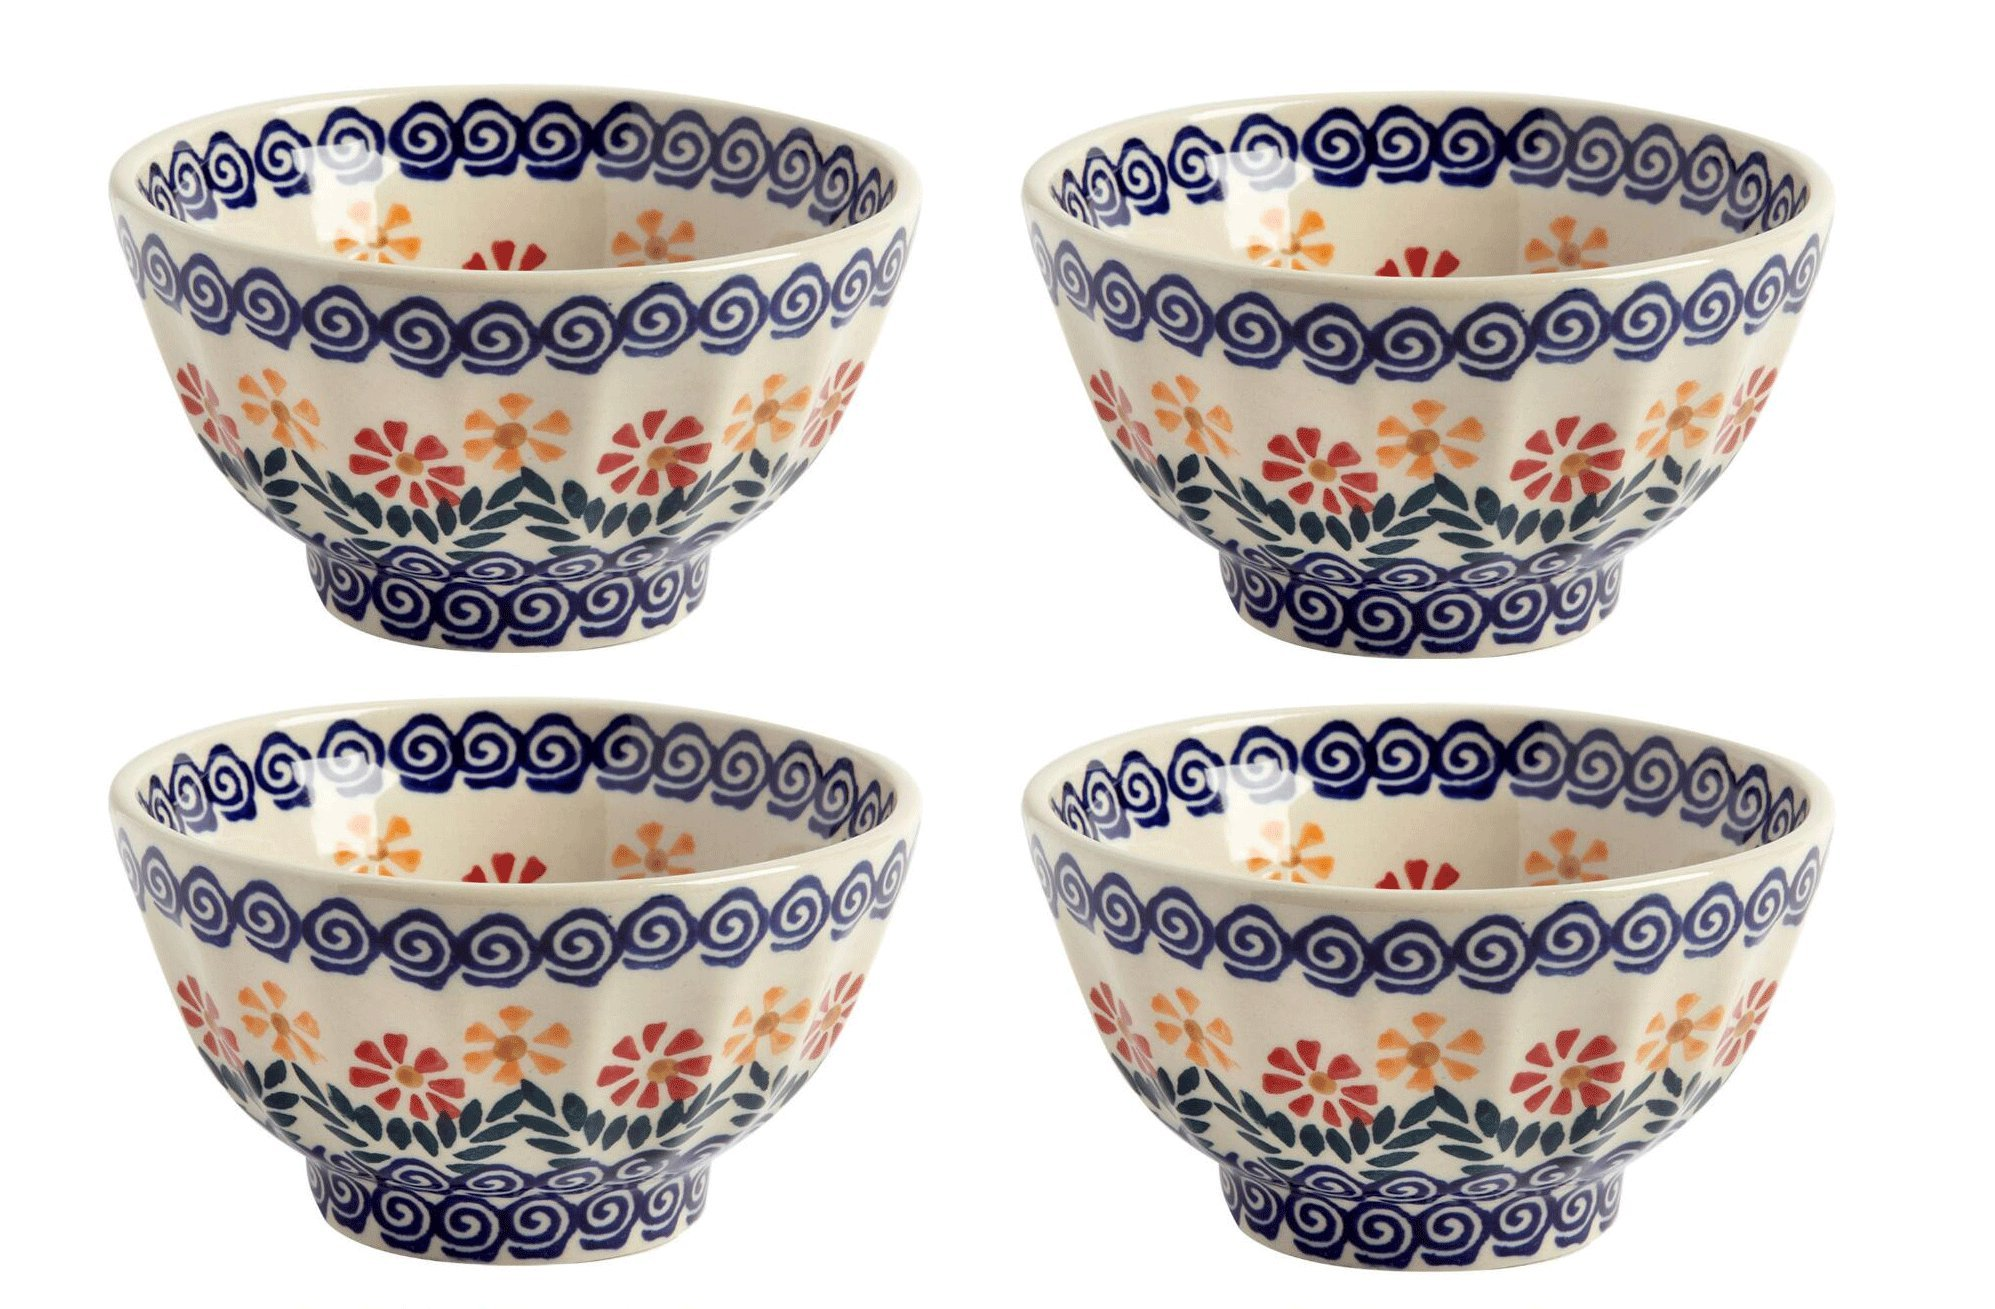 Polish Pottery Cheery Flowers Handmade Ceramic Fluted Bowls, Set of 4